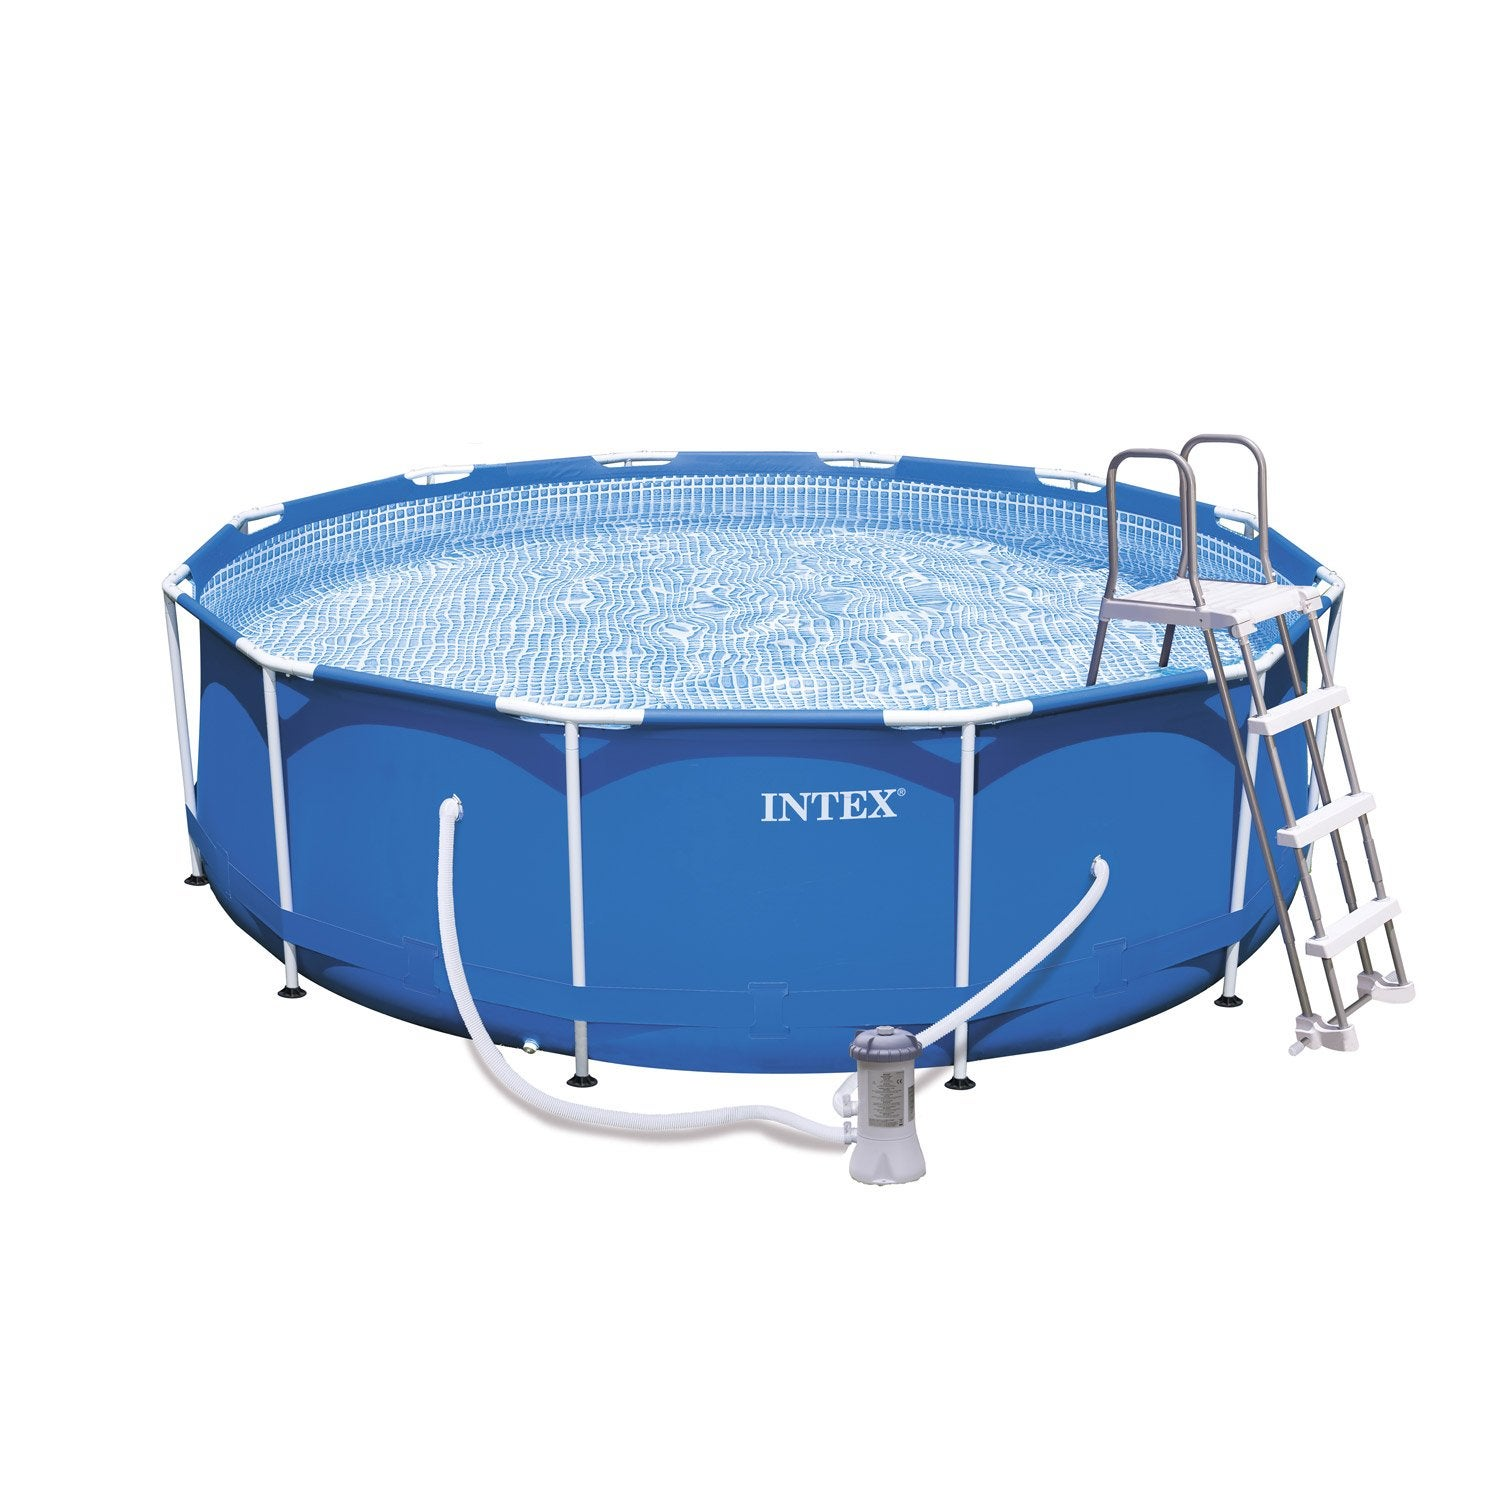 Piscine hors sol autoportante tubulaire m tal frame intex for Piscine tubulaire